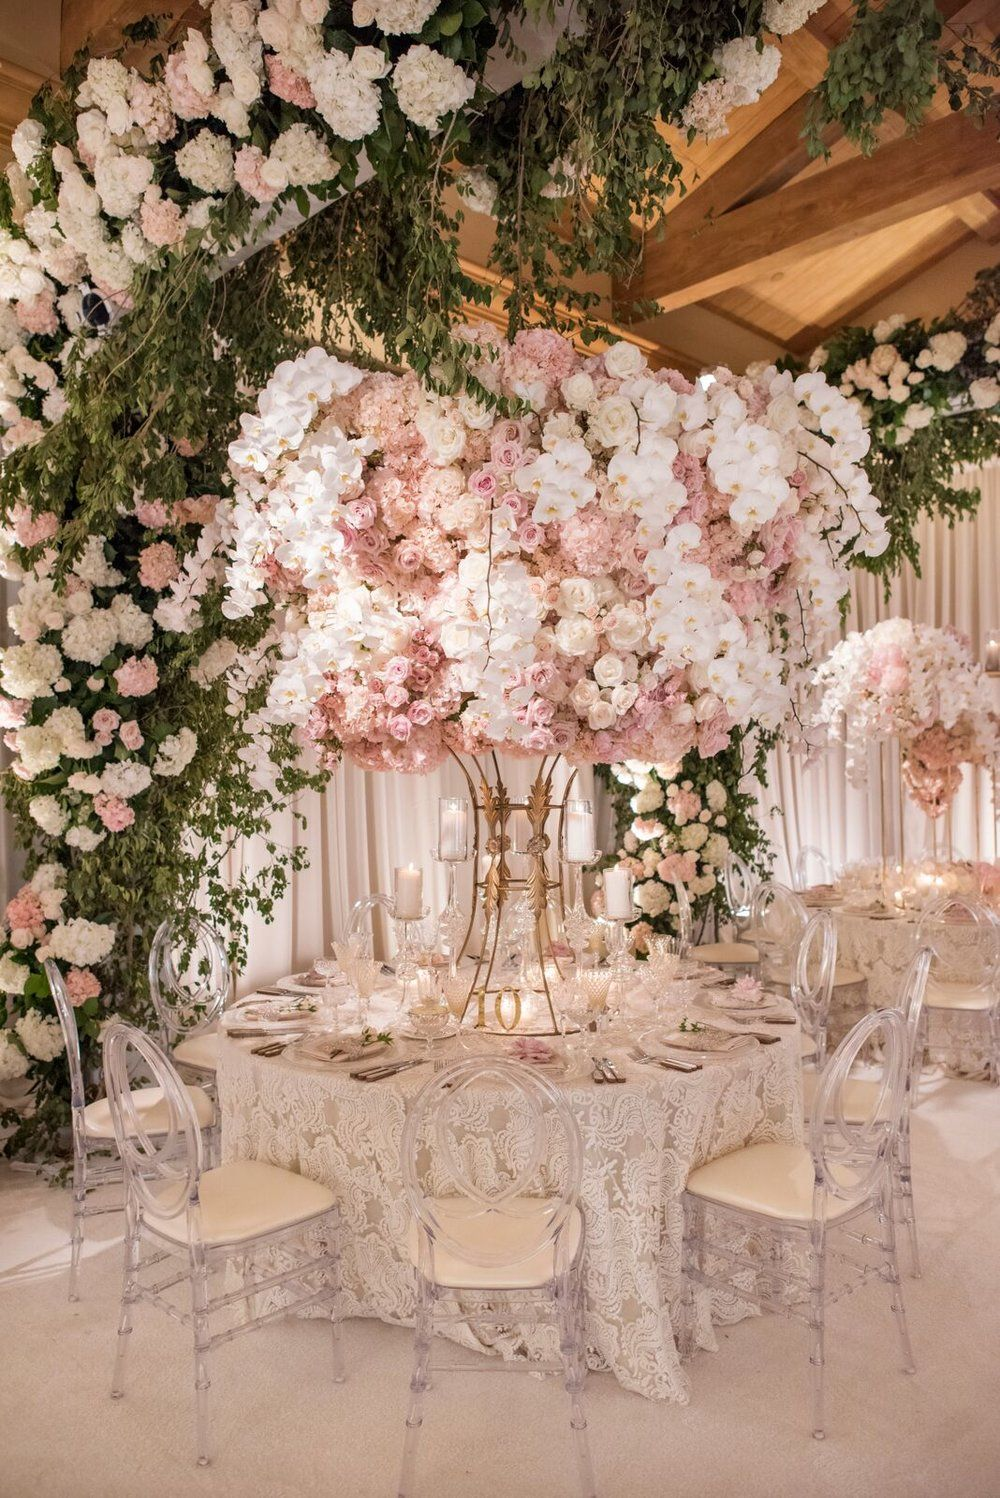 Wedding decorations white november 2018 Pin by itsnotdungmit on w e d d i n g in   Pinterest